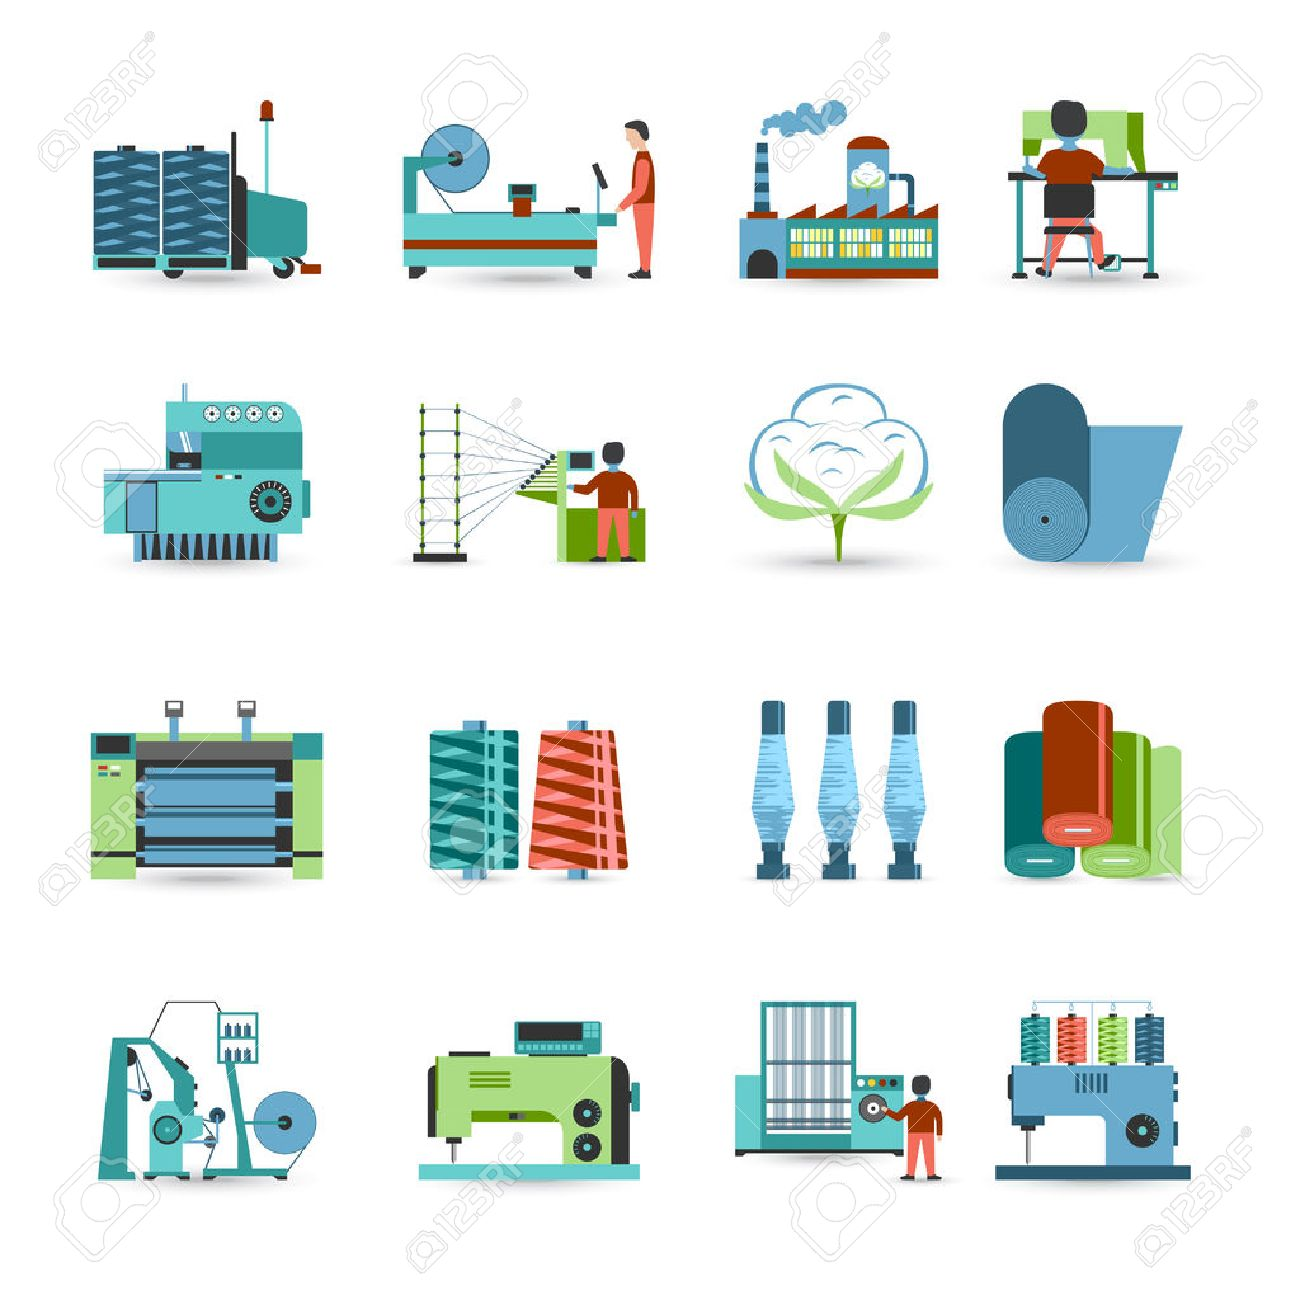 Textile manufacturing process flat icons collection with weaving yarn machinery equipment and clothes fabrication abstract isolated vector illustration - 51756578